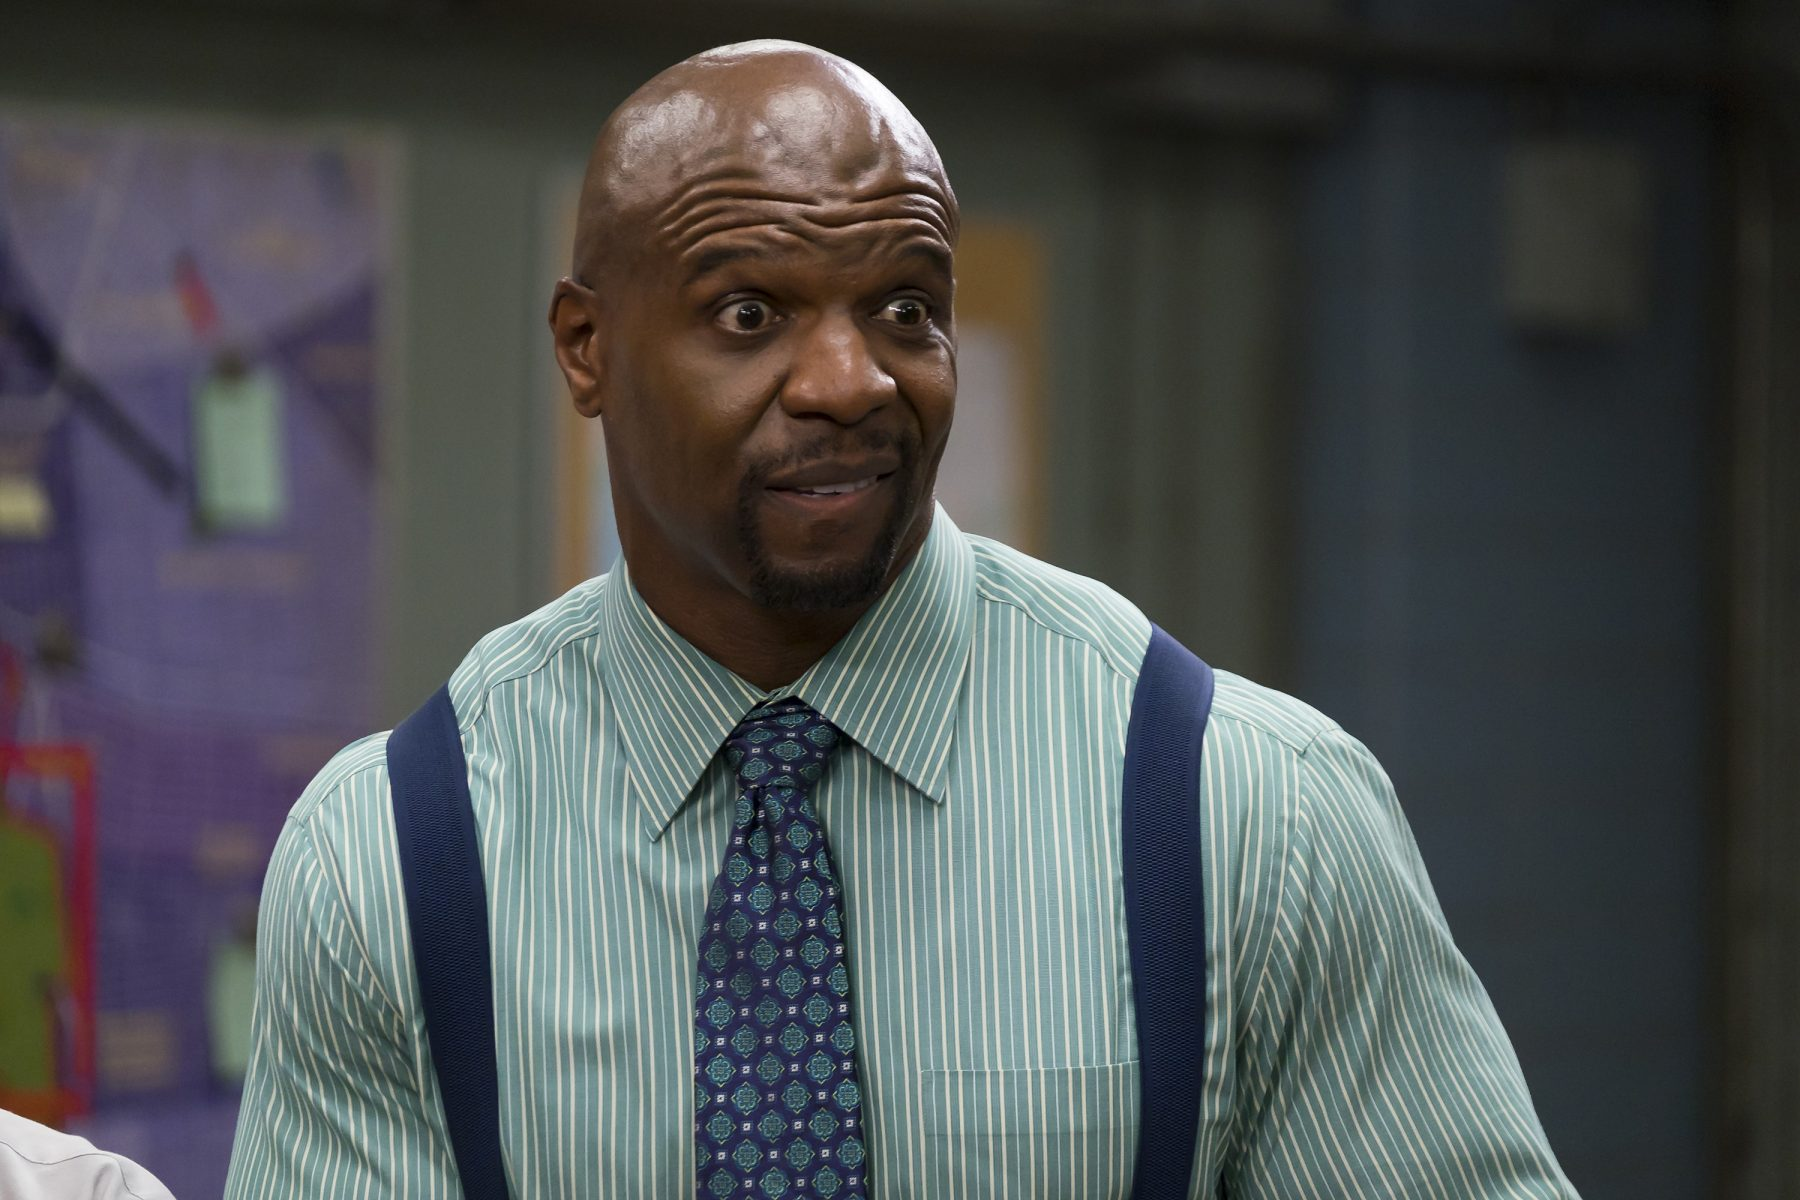 Warner Channel exibe 5ª temporada de Brooklyn 99